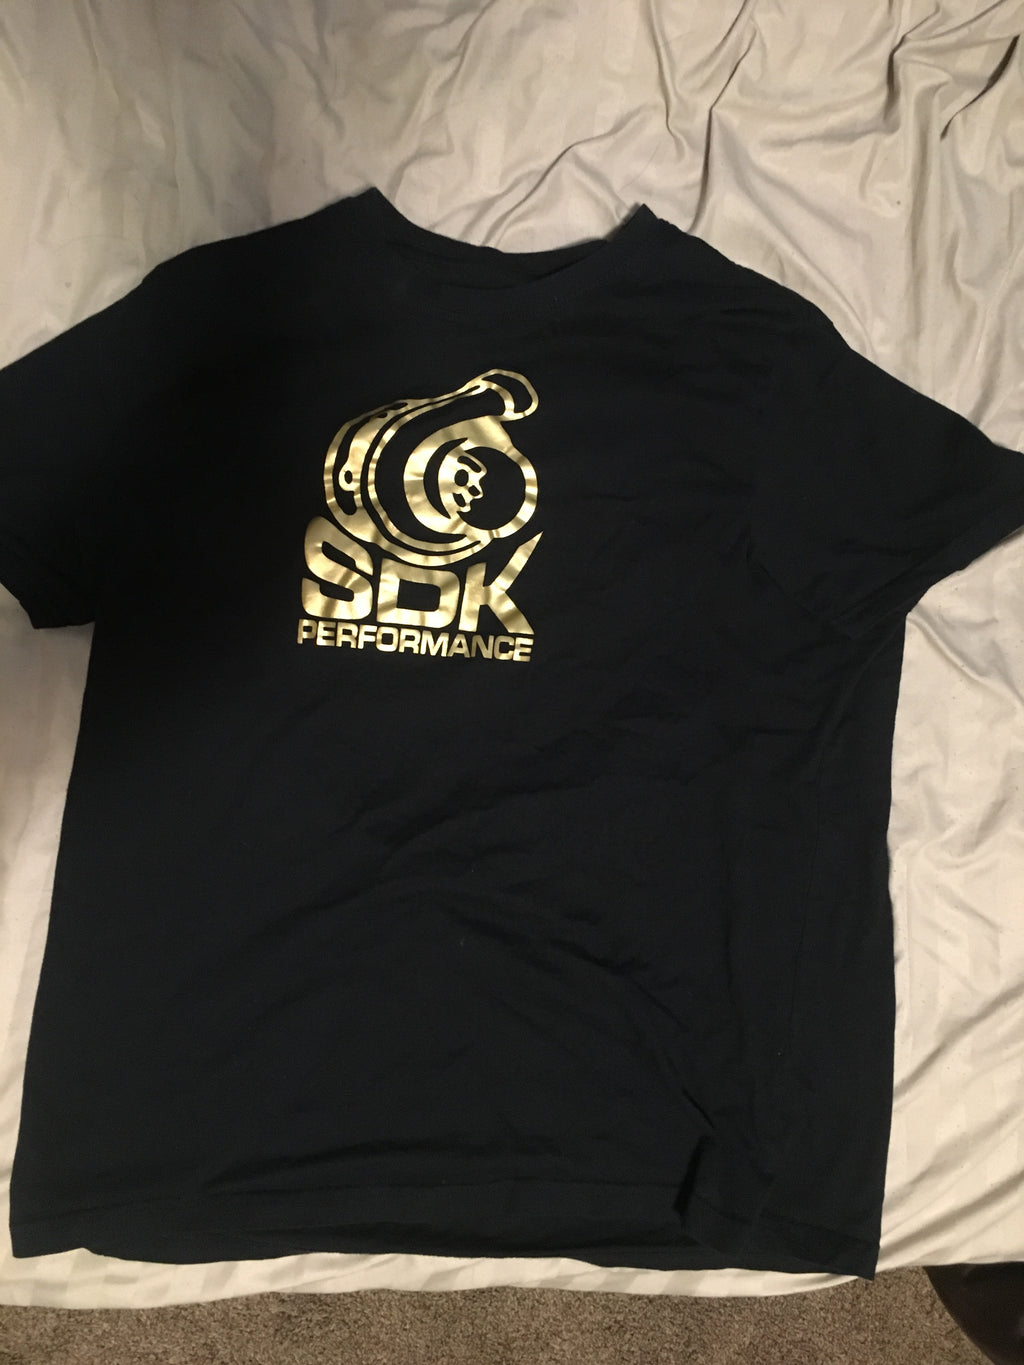 SDK Performance Tee